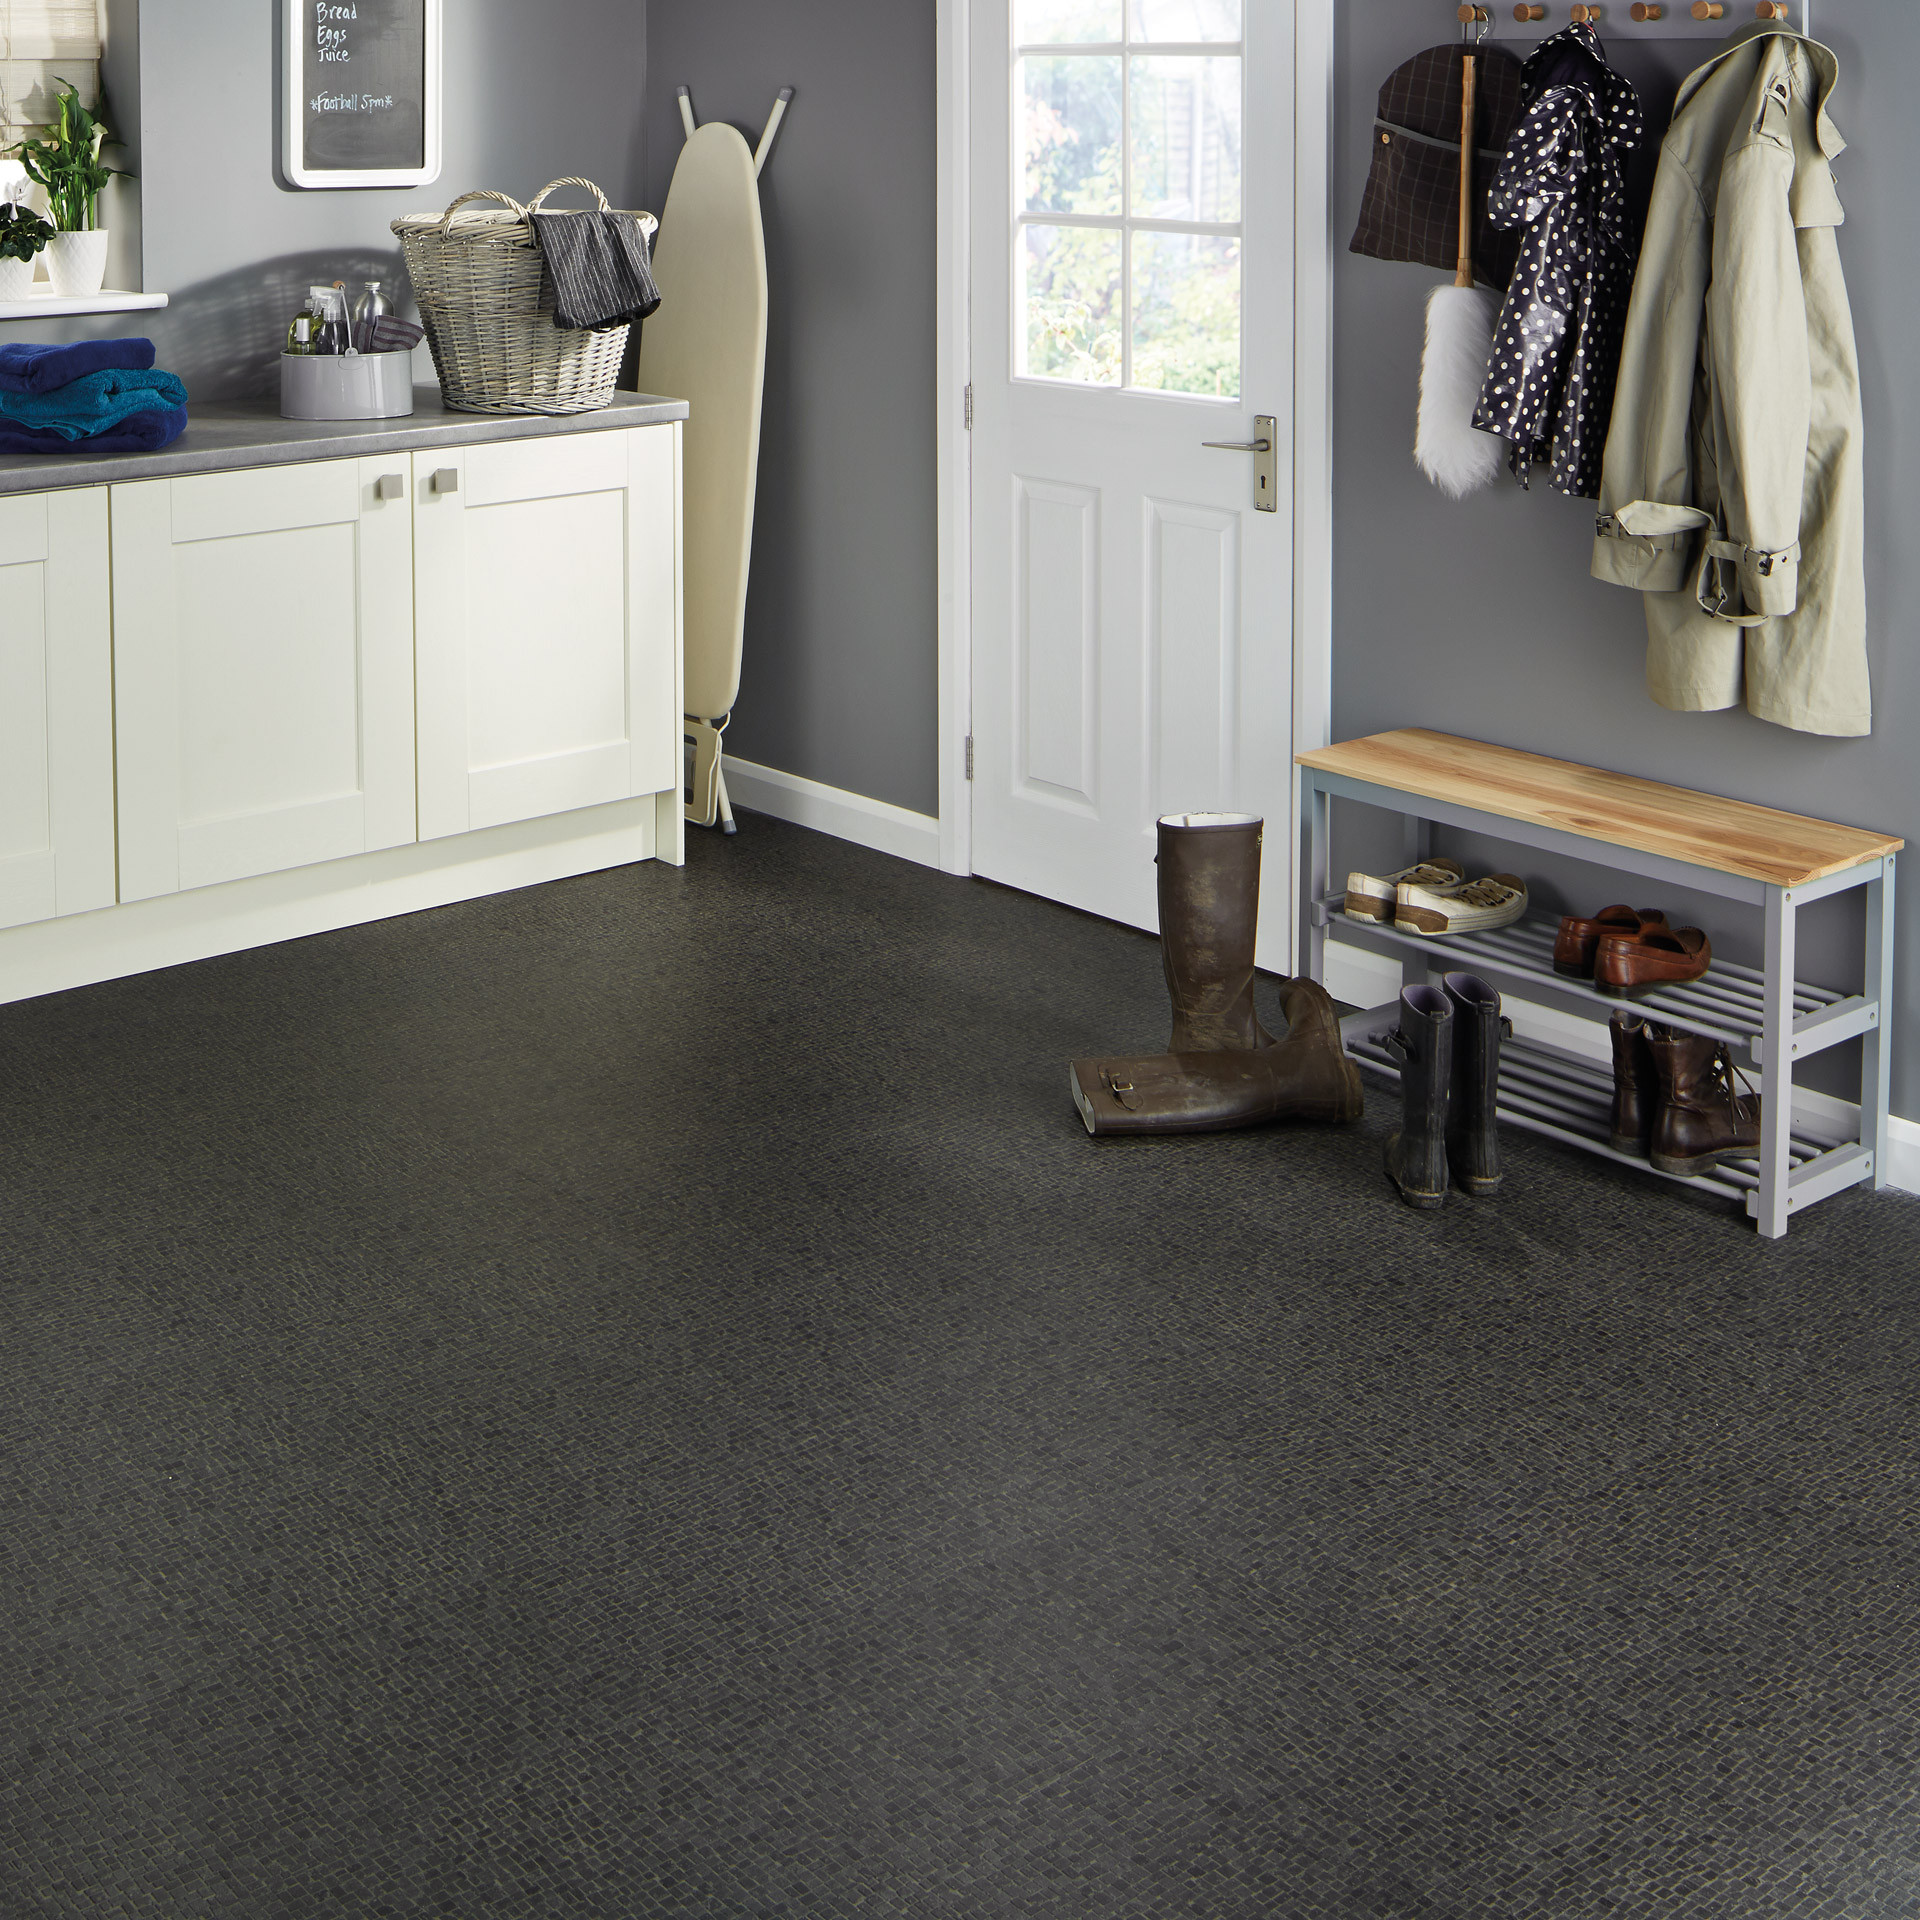 Best ideas about Laundry Room Flooring . Save or Pin Utility & Laundry Room Flooring Ideas for Your Home Now.